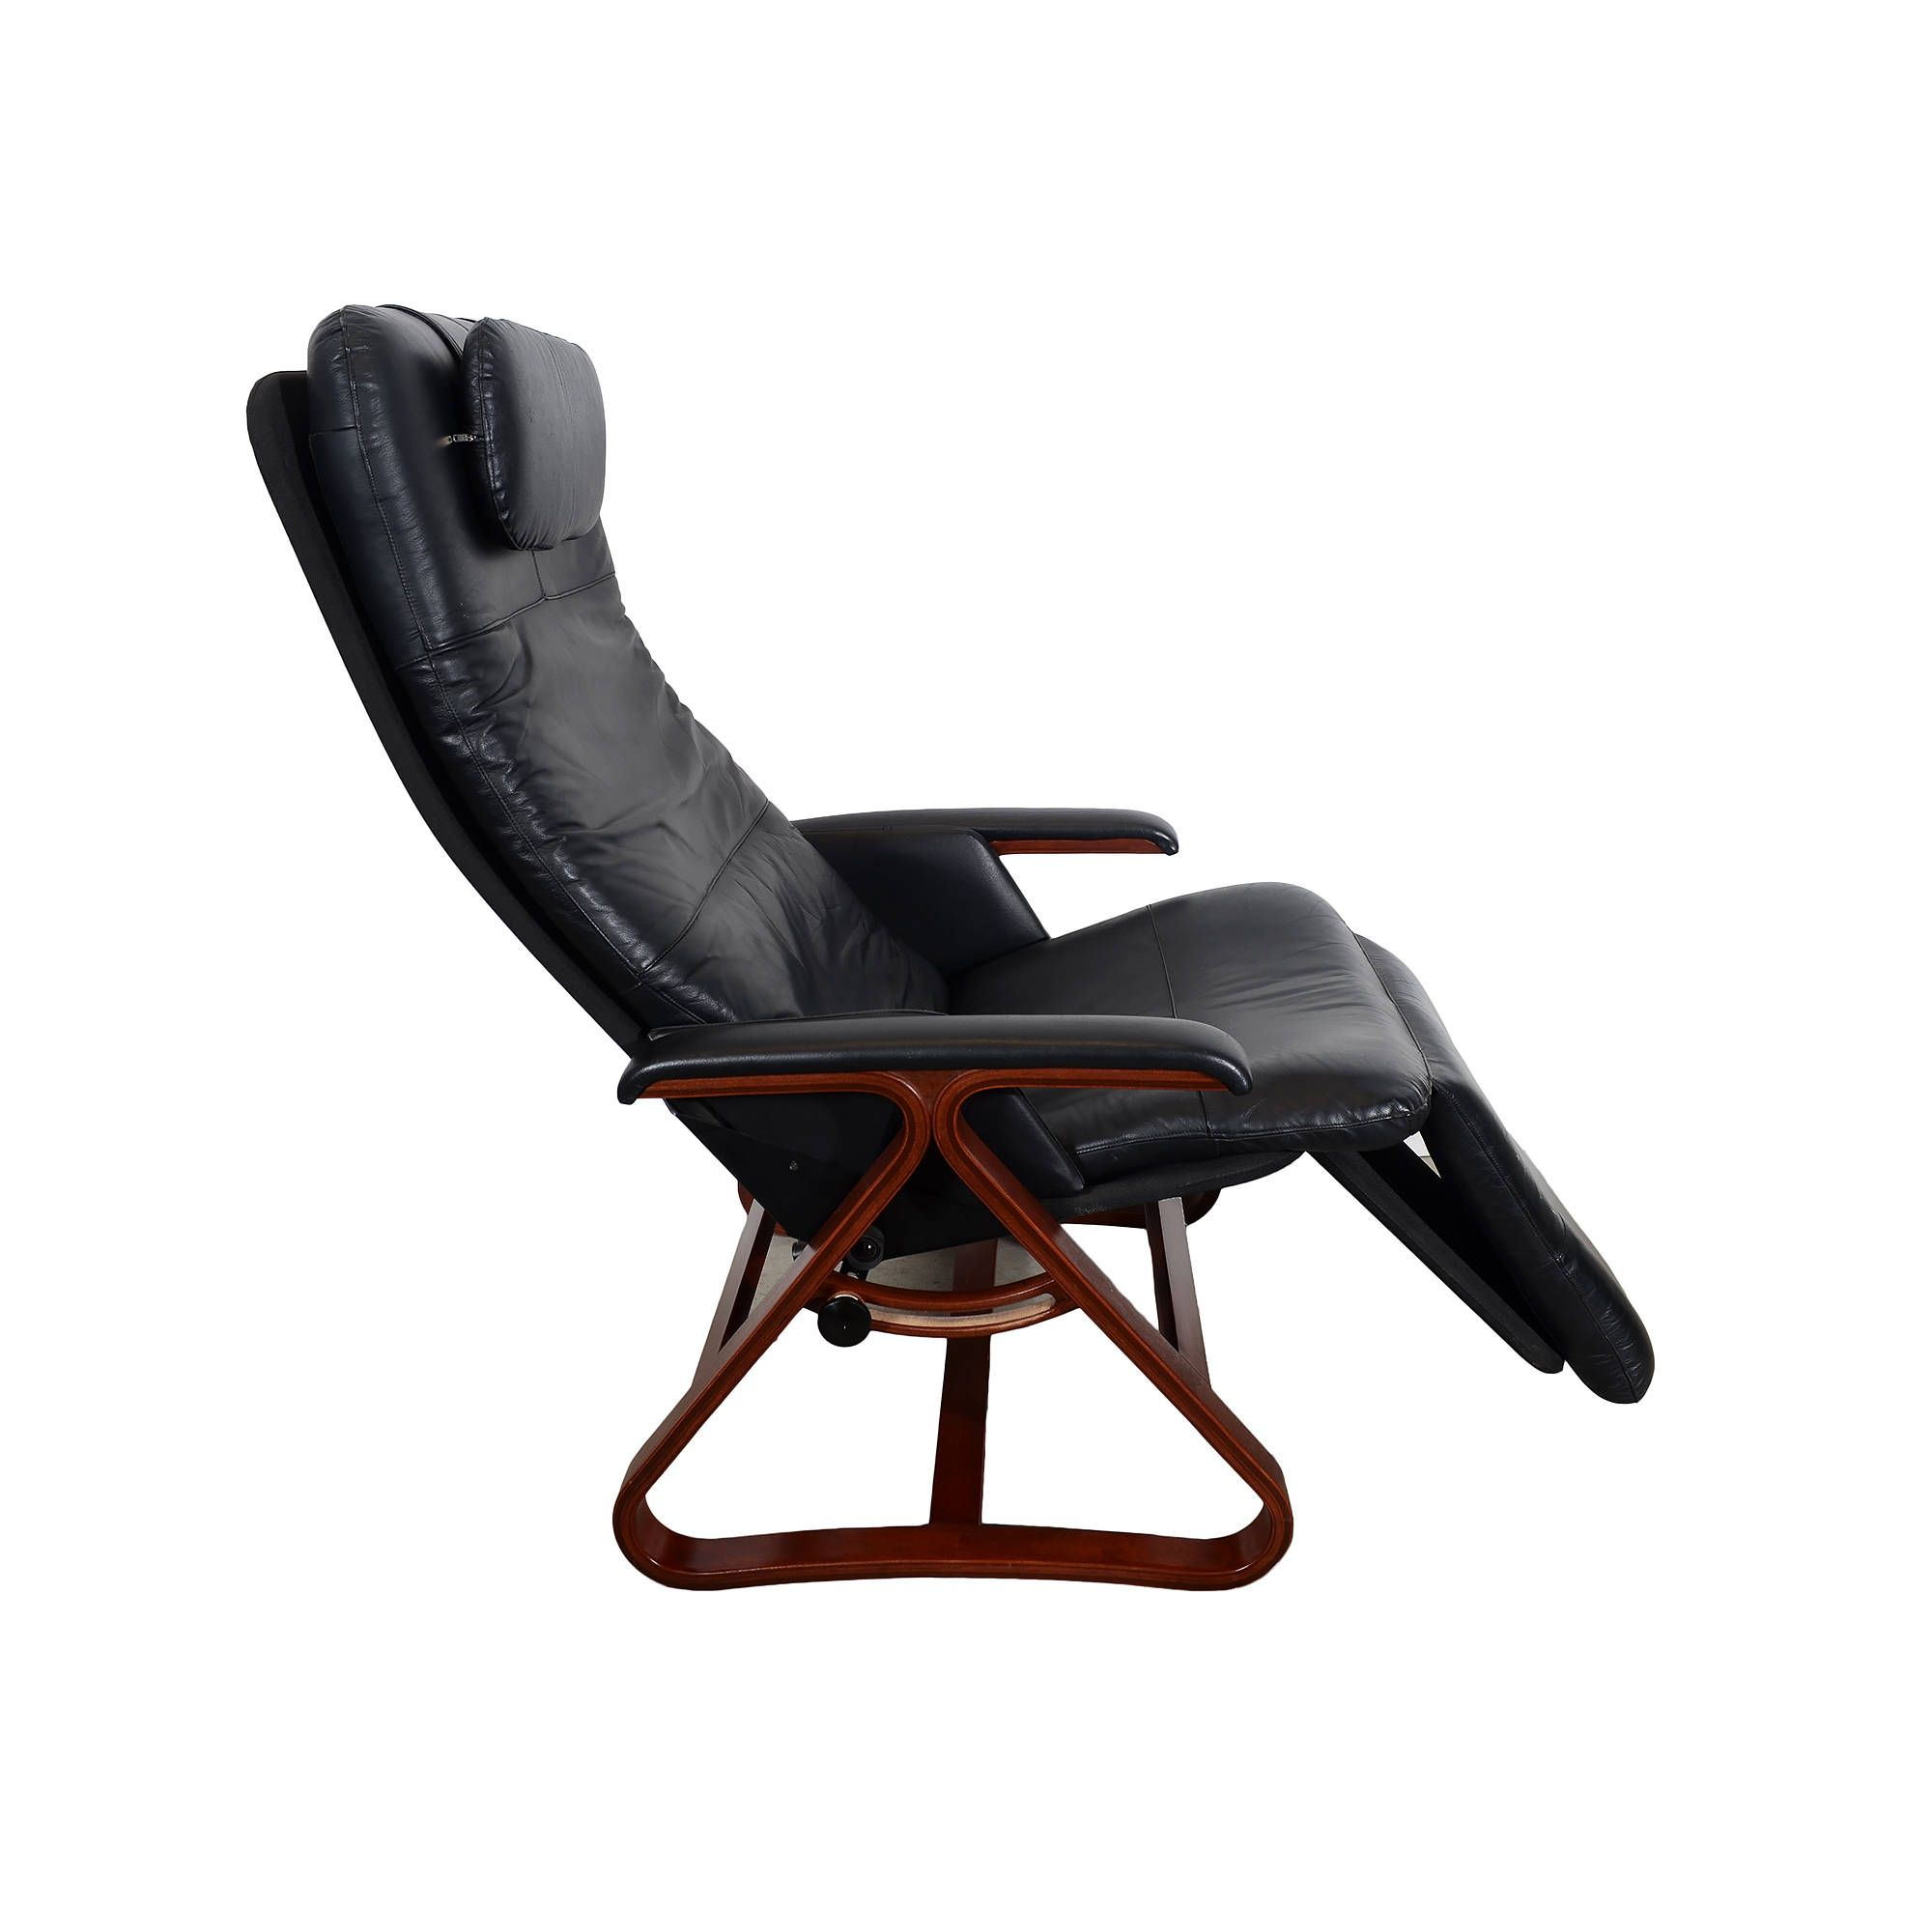 Leather Lounge Chair Backsaver Zero Gravity Chair Danish Modern Recliner  Black Leather Chair By HearthsideHome On